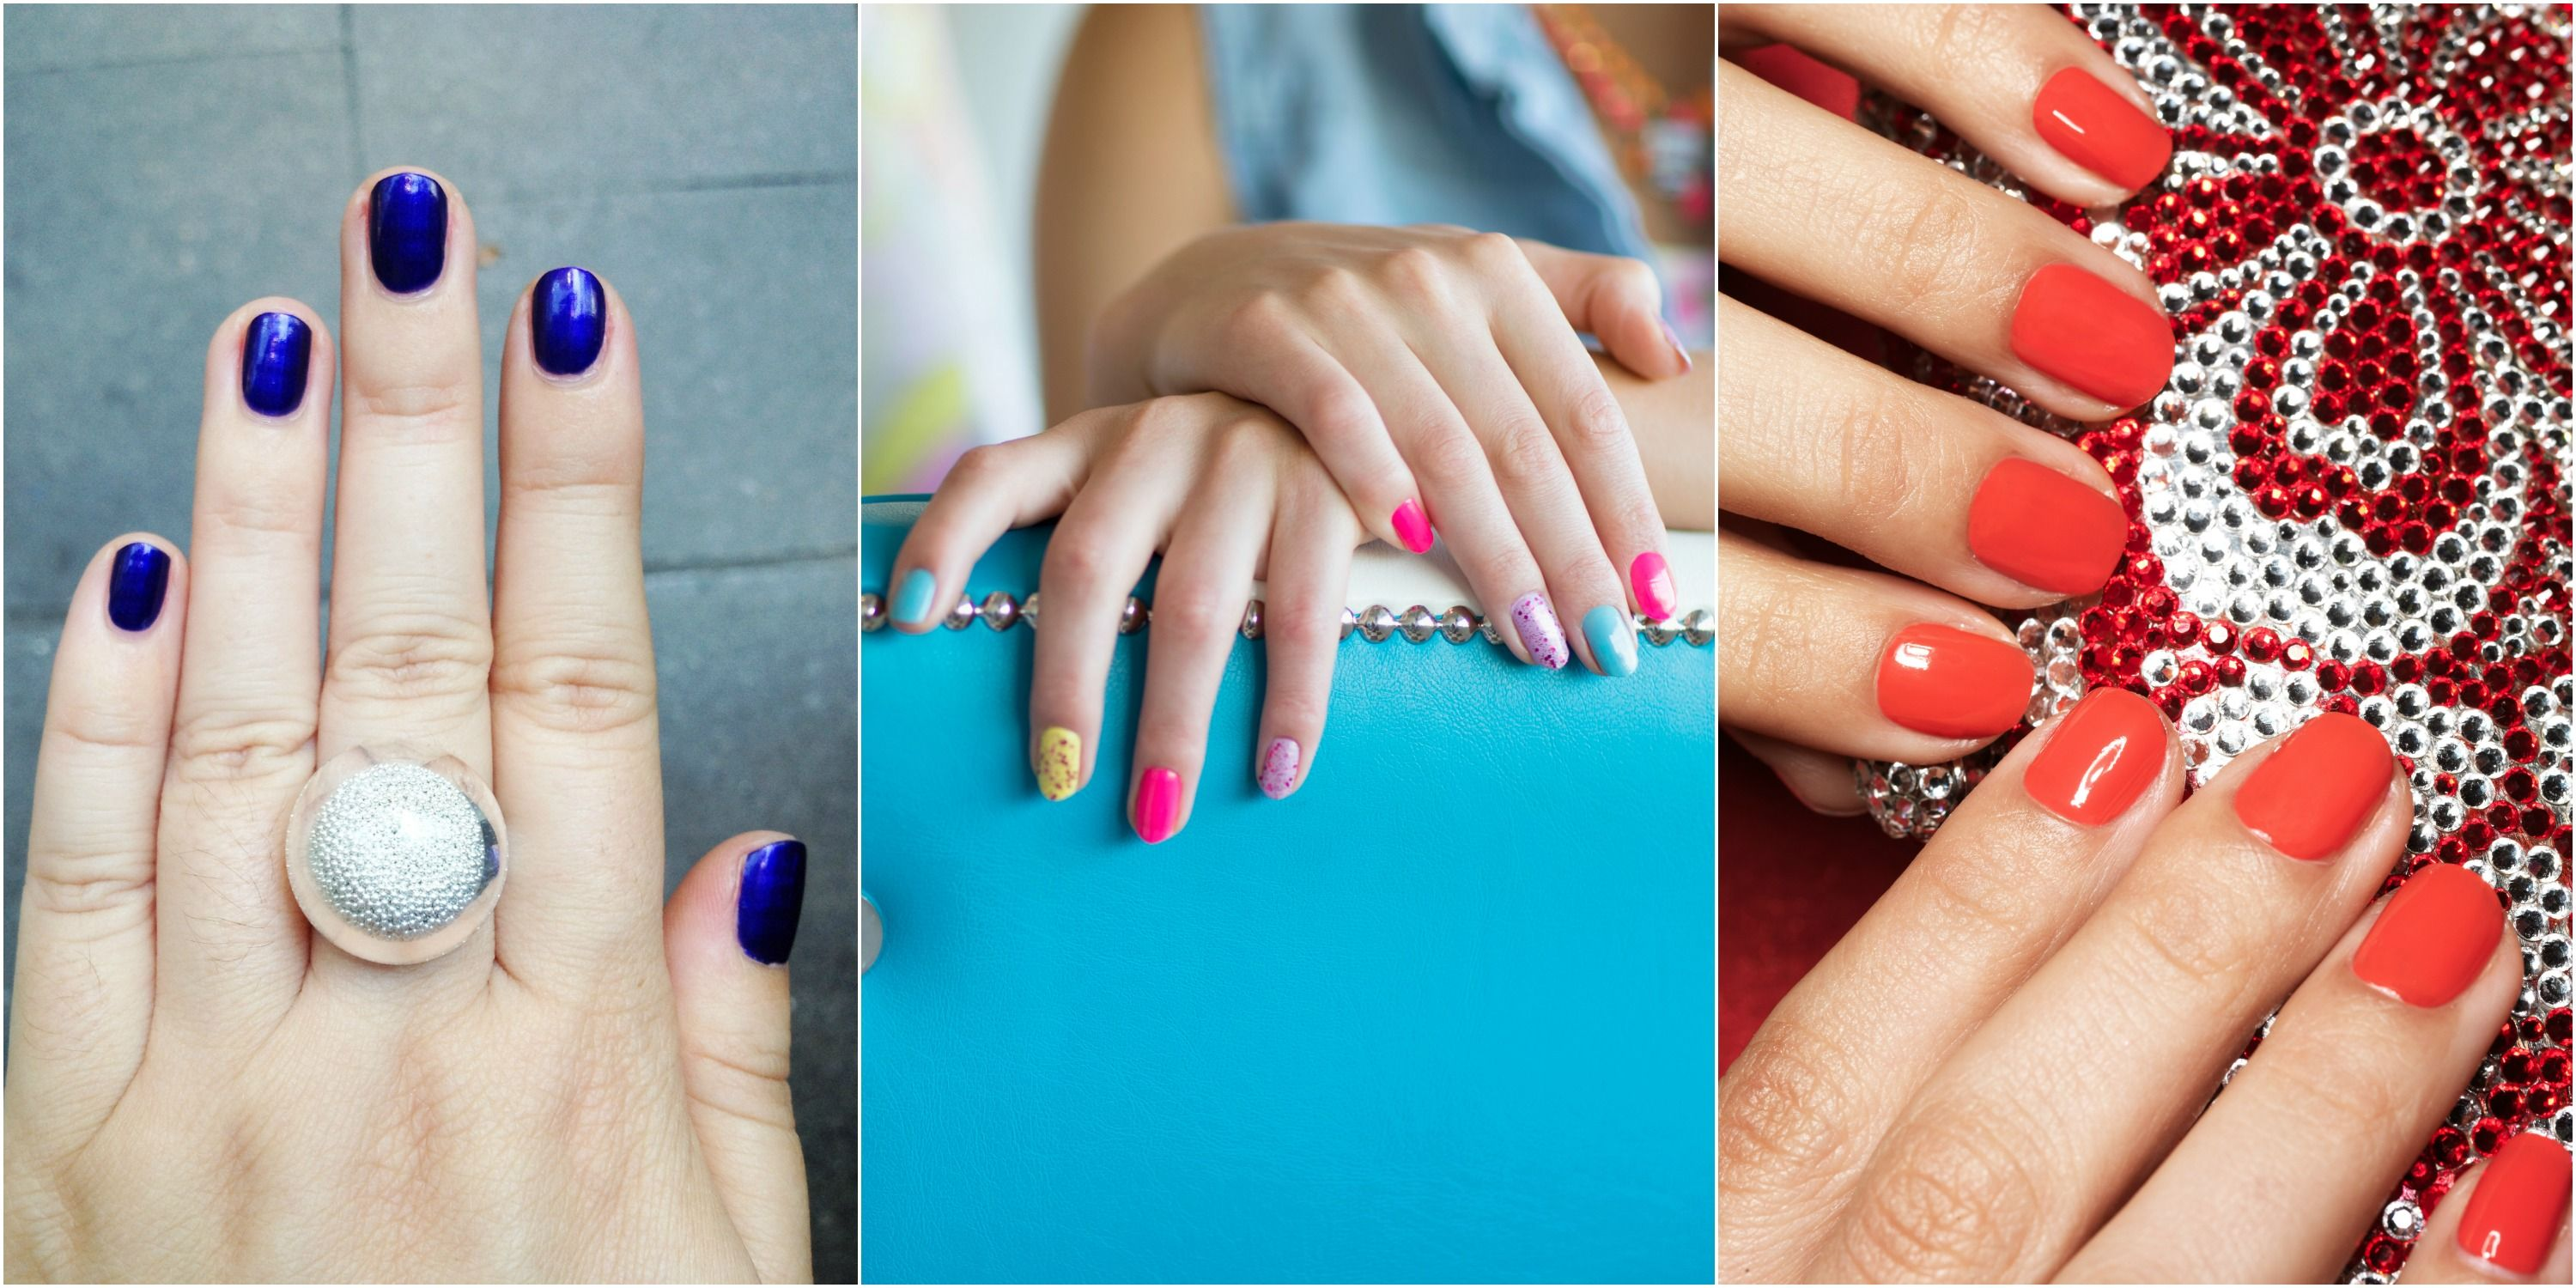 25 Spring Nail Polish Colors — Nail Polish Colors for Spring and Summer